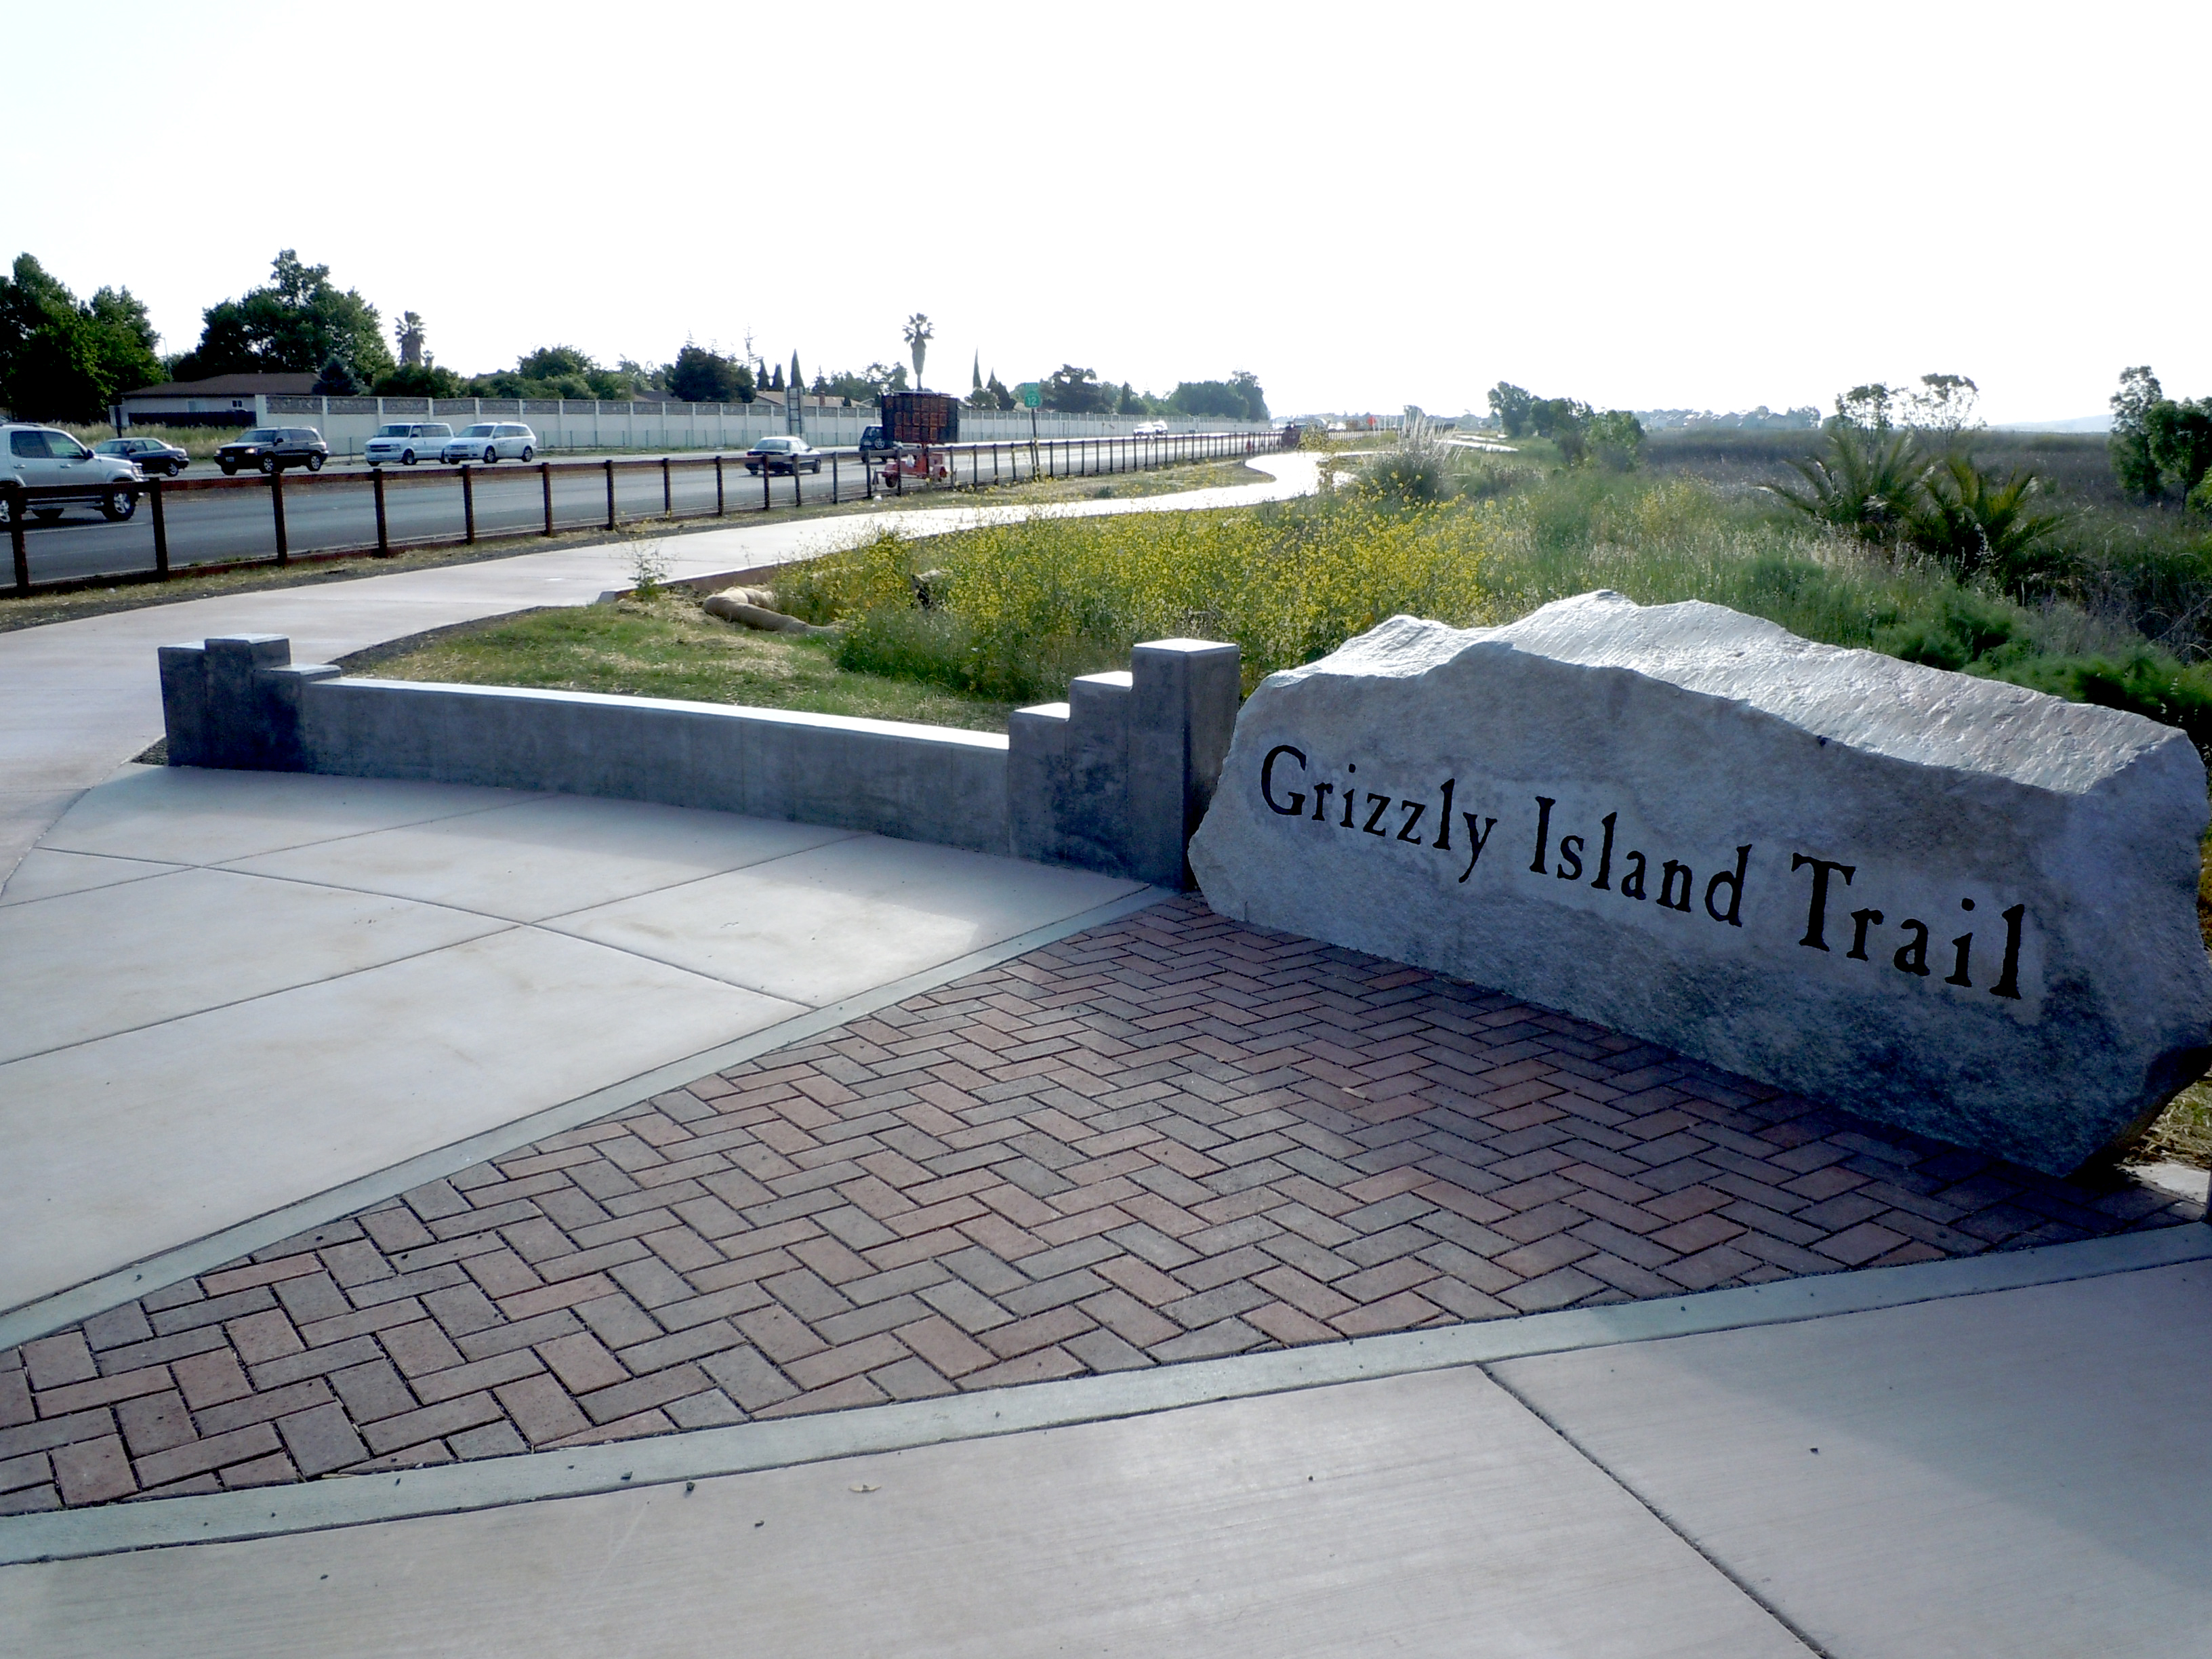 Grizzly Island Trail